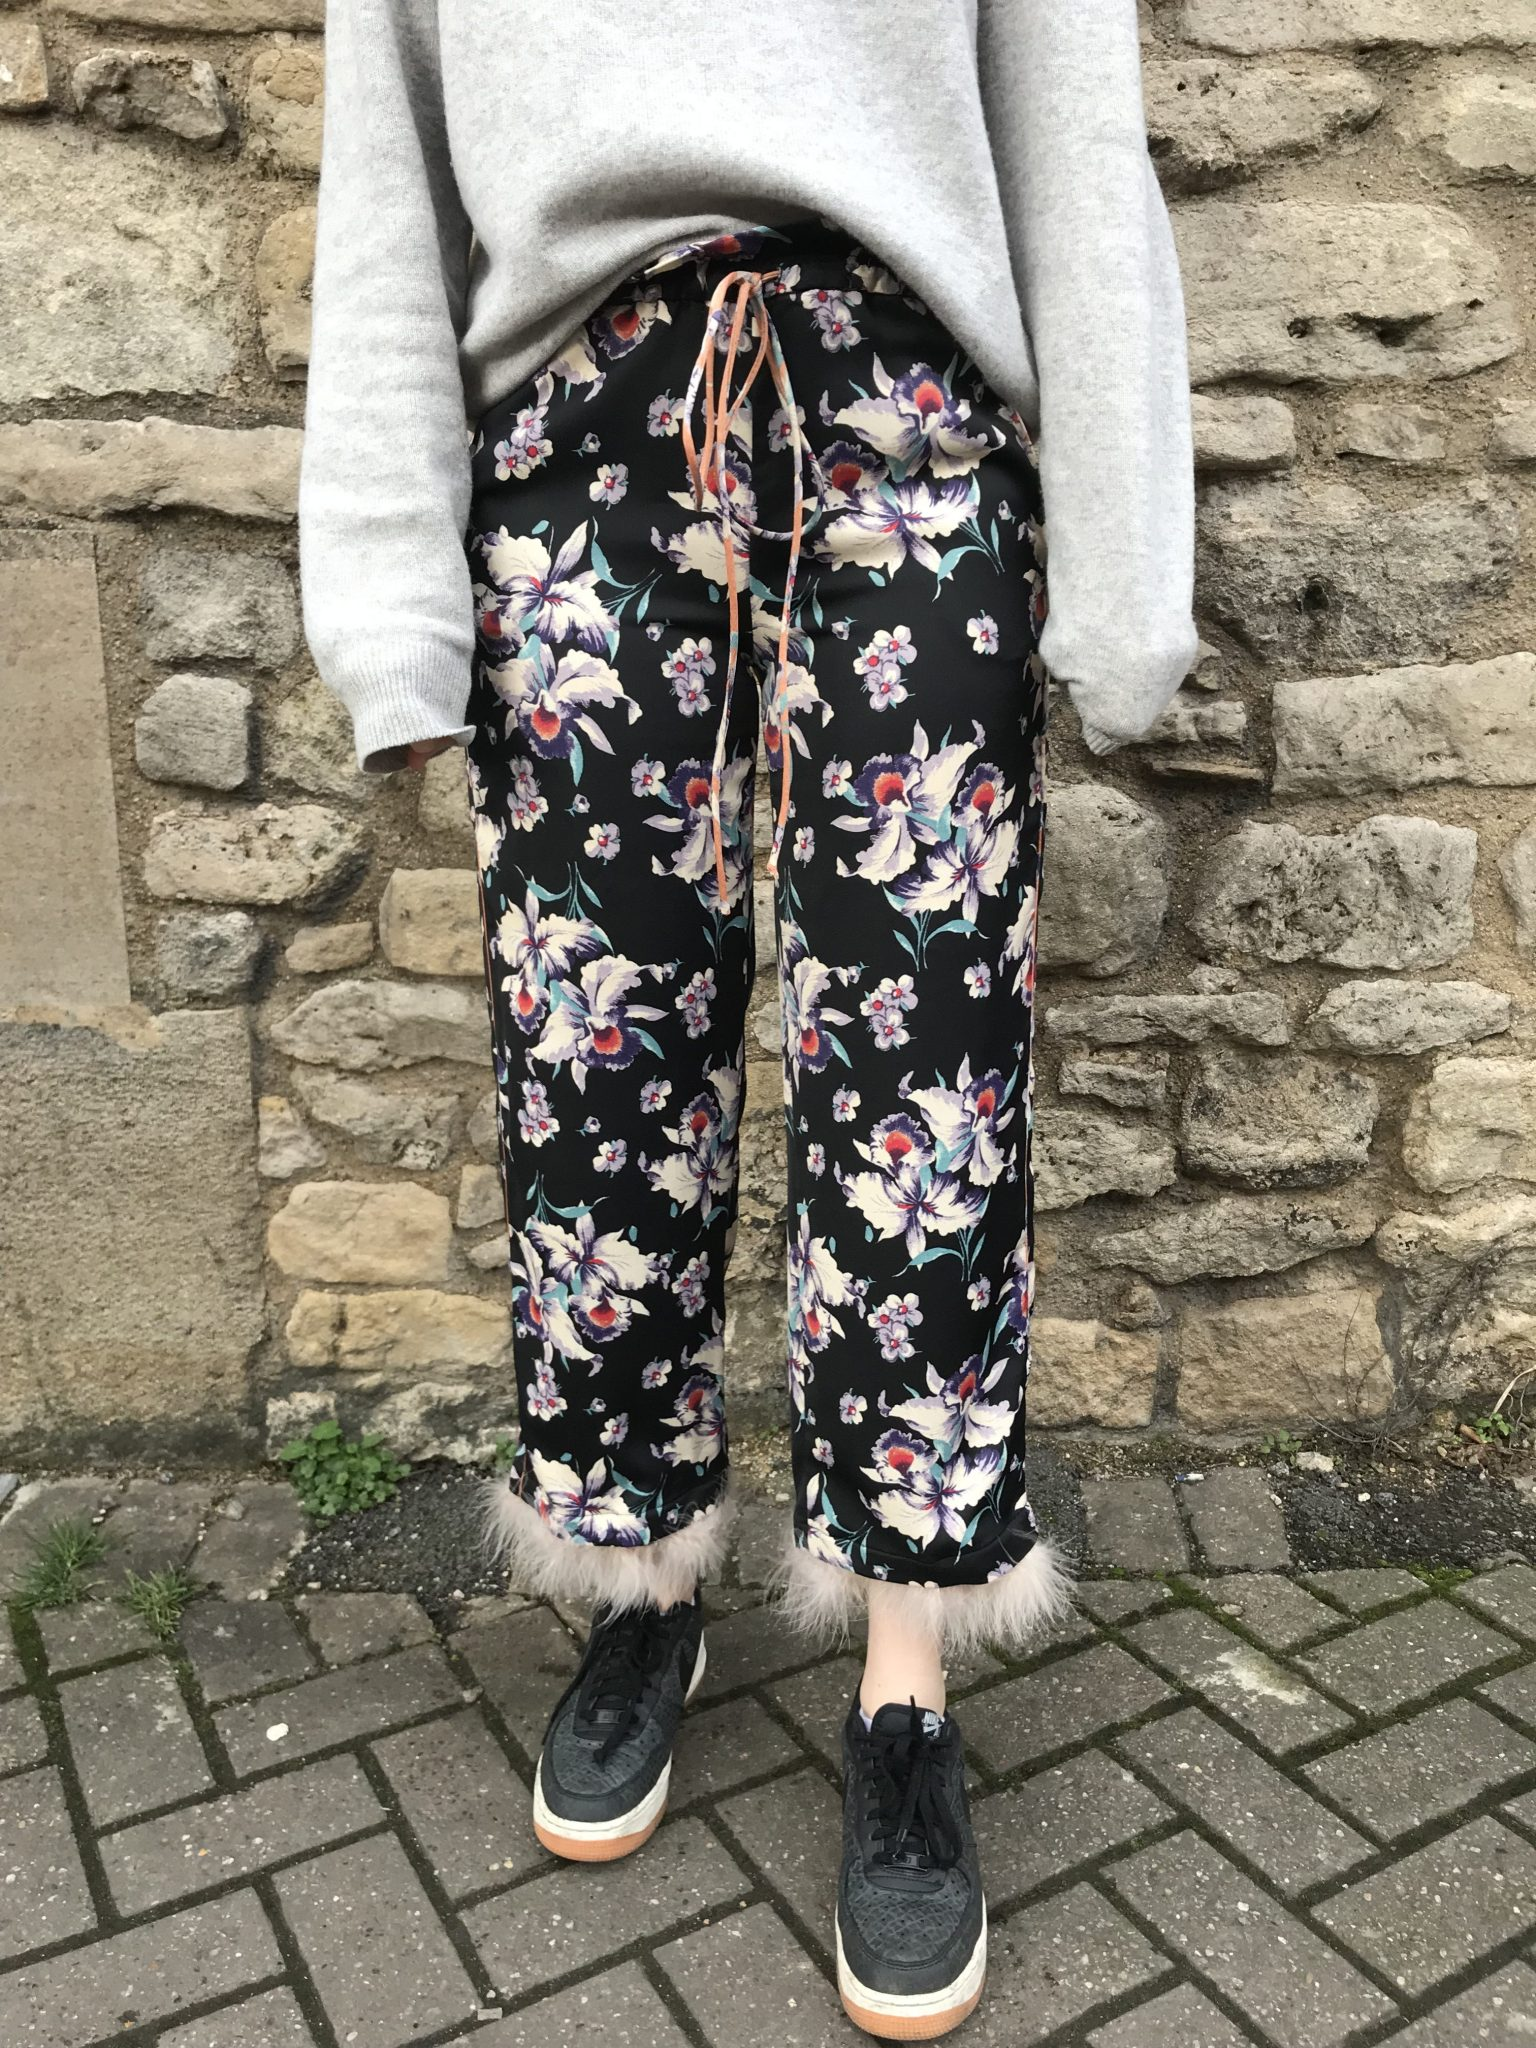 What's wrong with 3/4 length flared trousers?